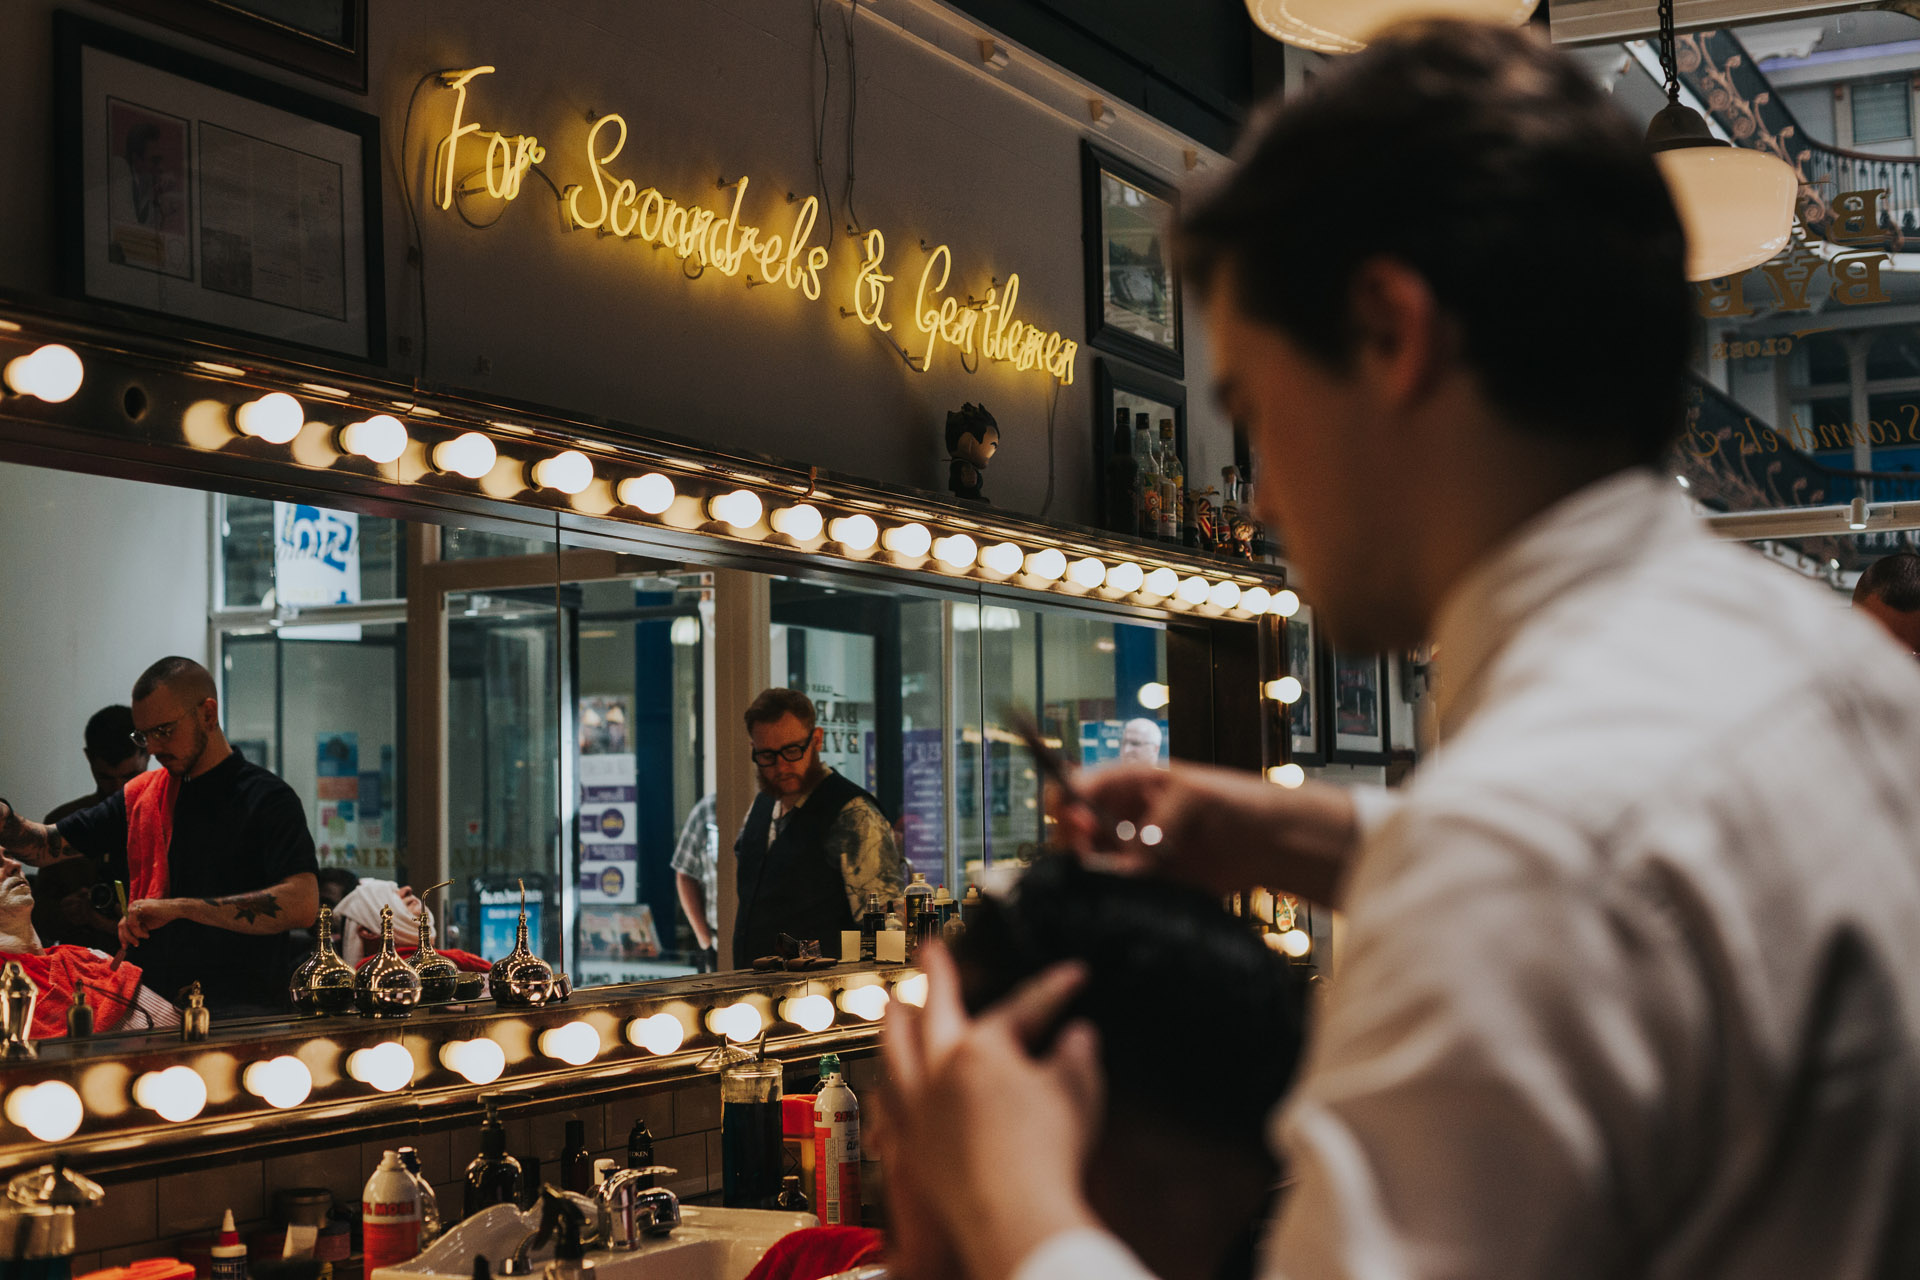 Barber and Groom in forground with neon sign in focus in the back ground